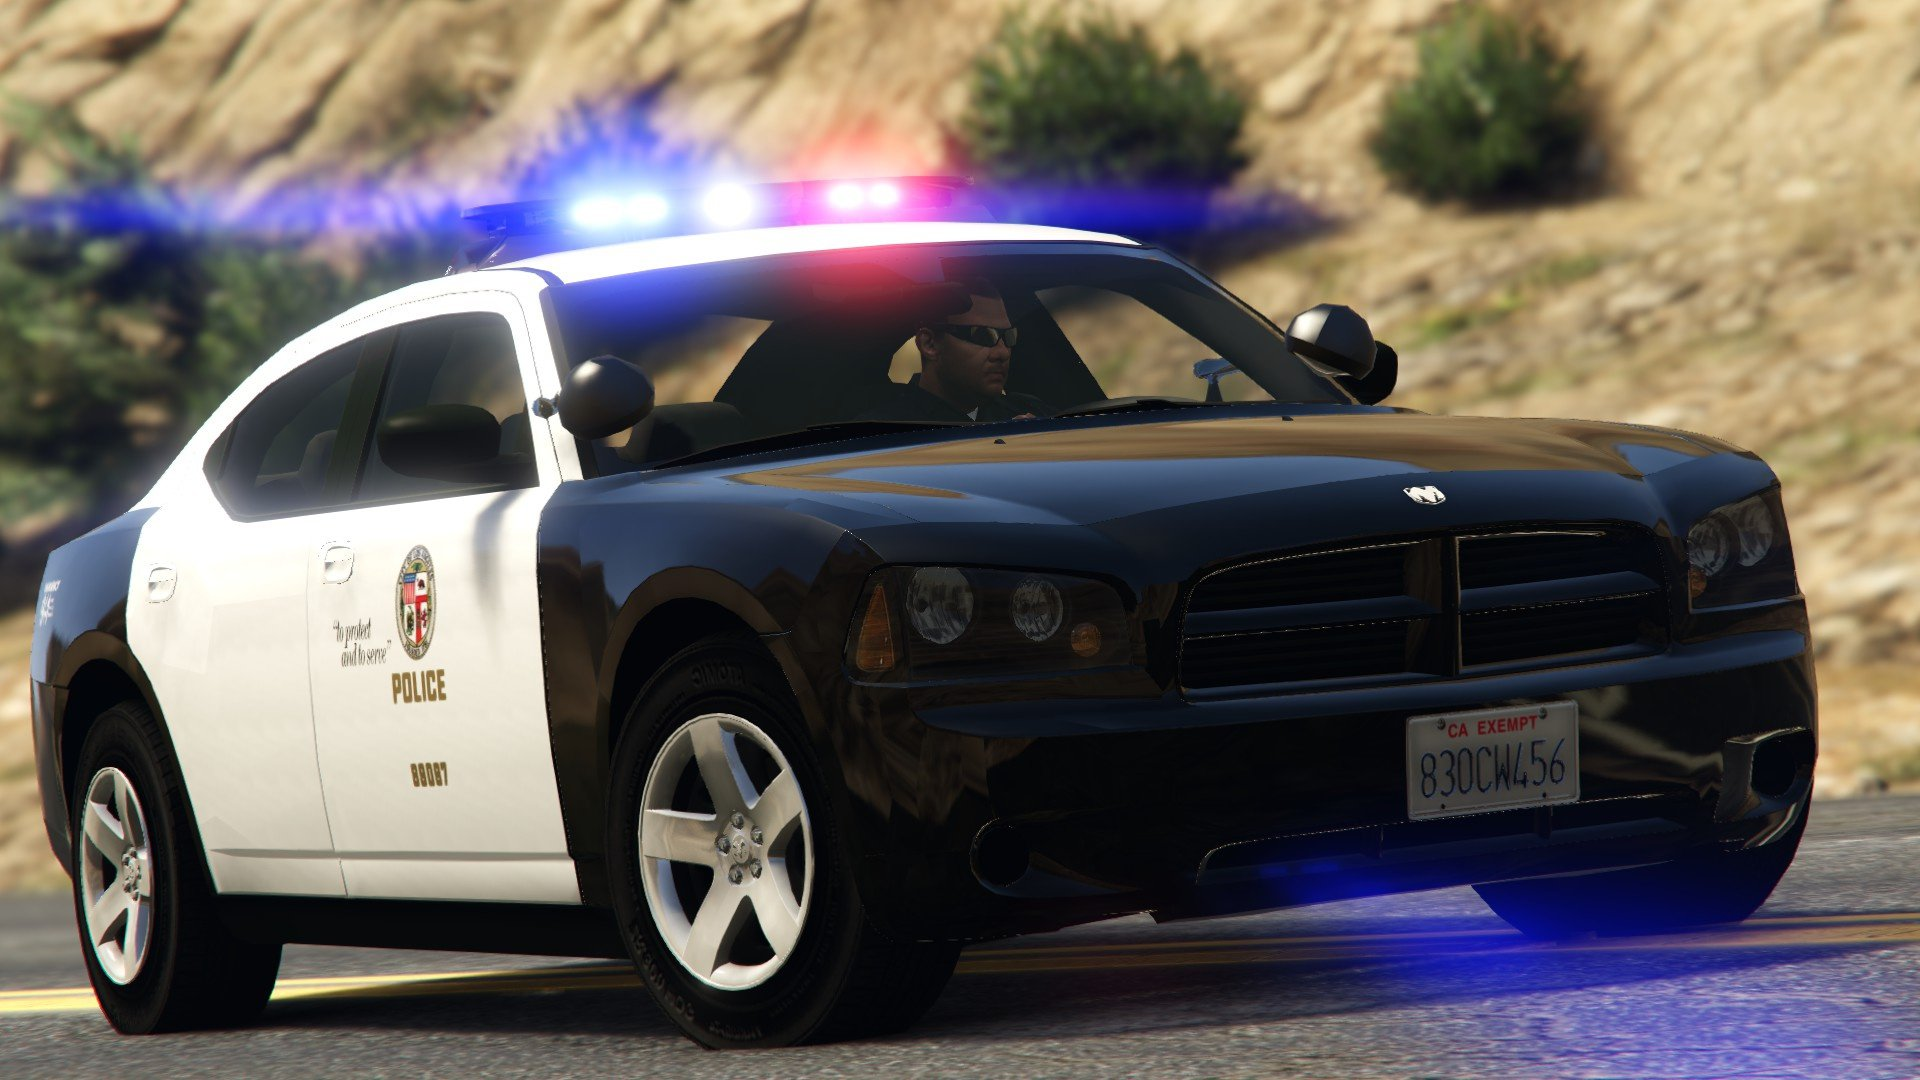 Dodge Charger 2009 Los Angeles Police Department